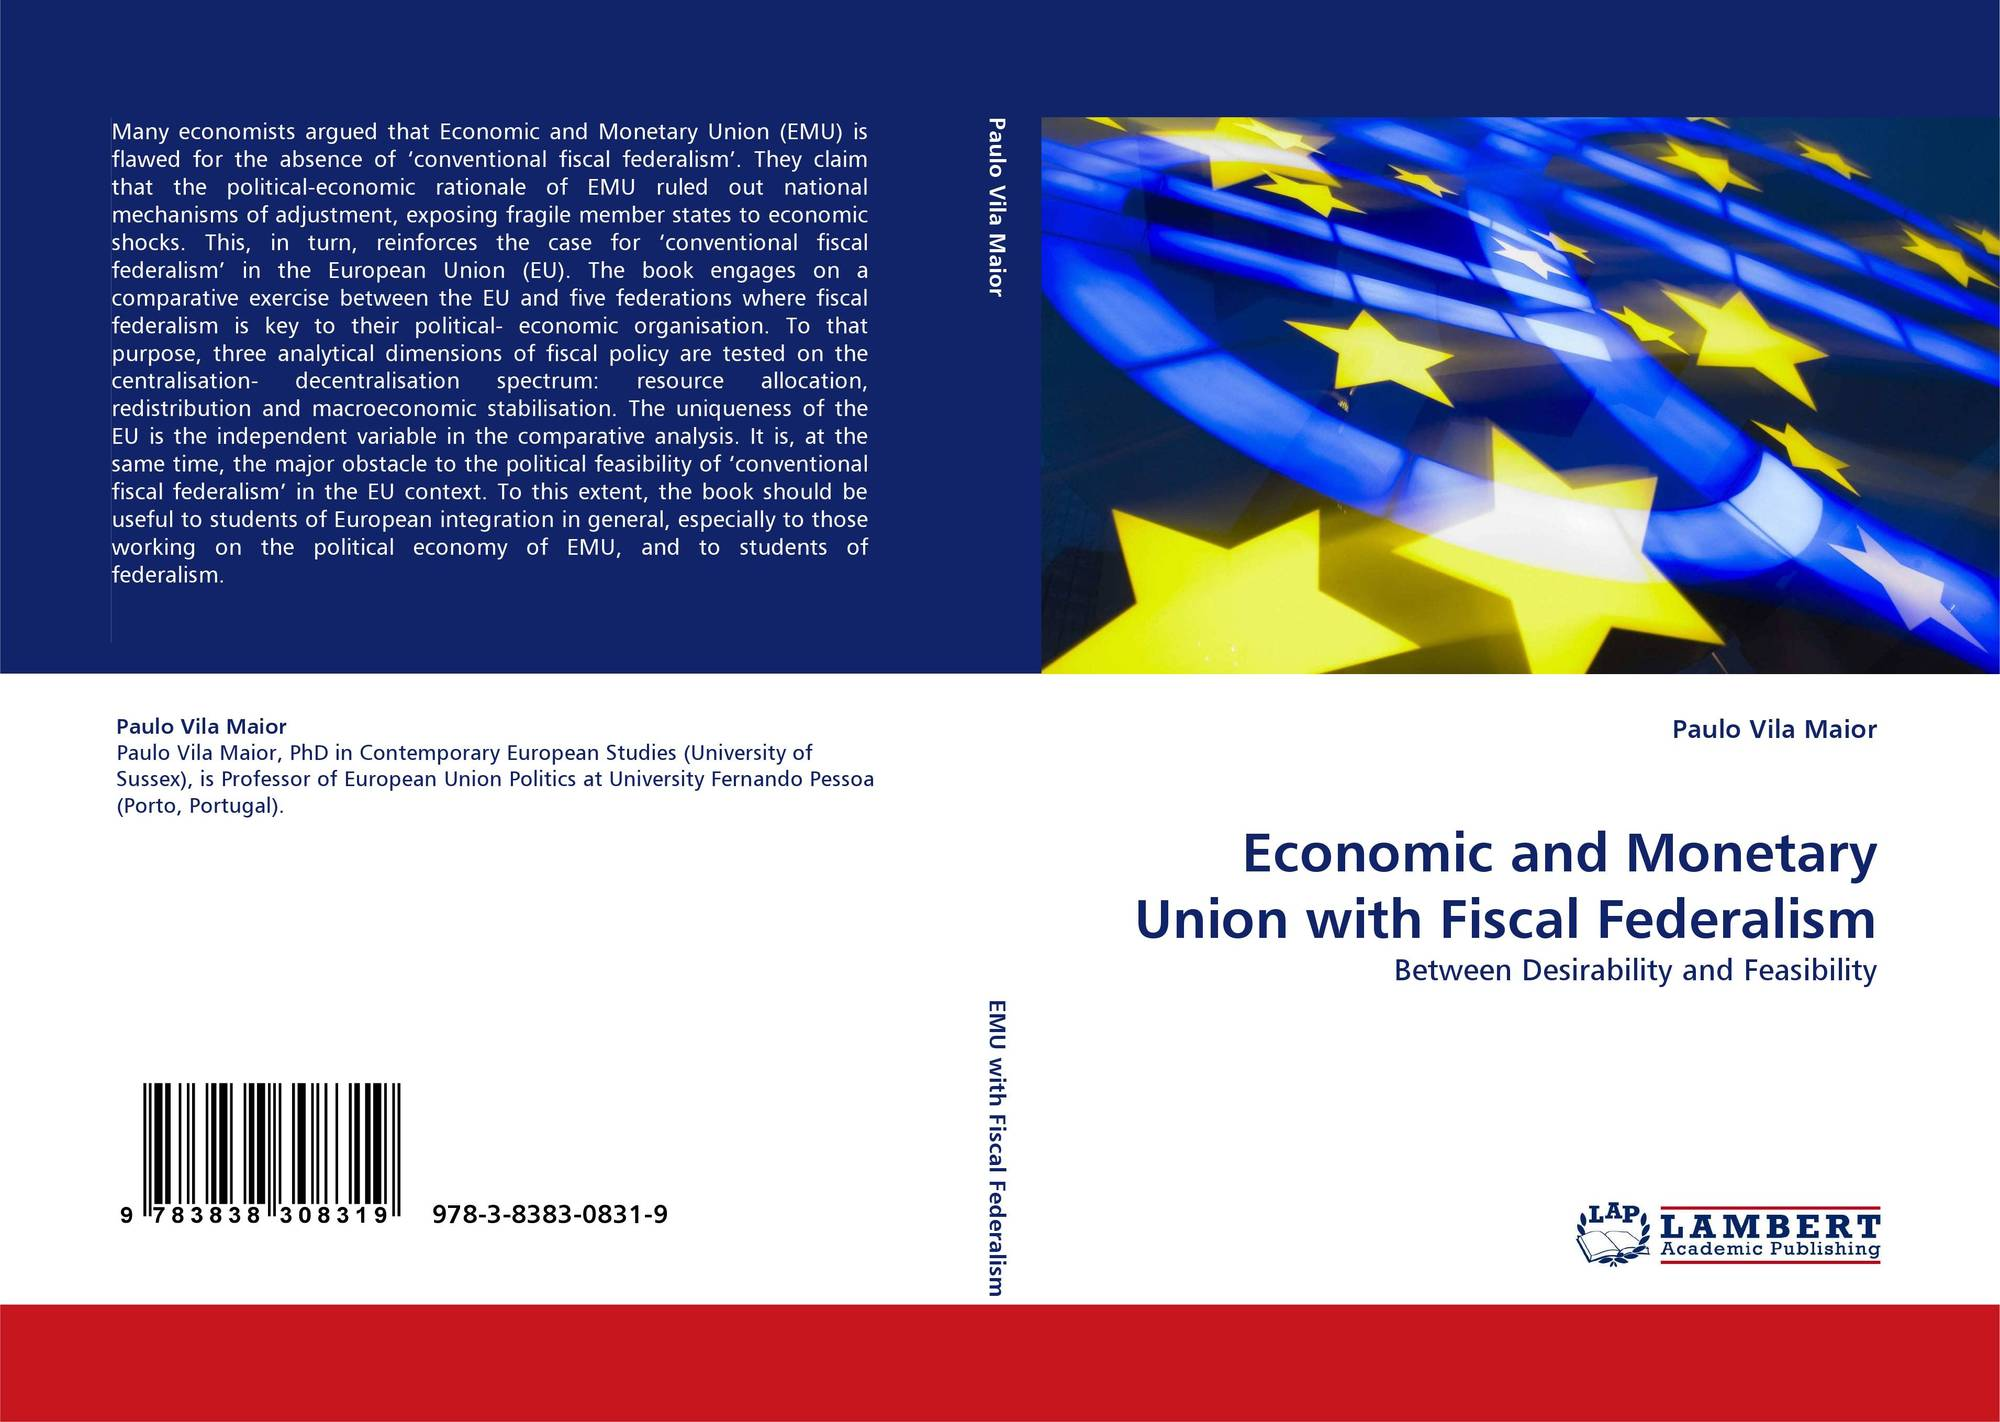 economic and monetary union Economic and monetary union was a recurring ambition for the european union from the late 1960s onwards because it promised stability and an environment.